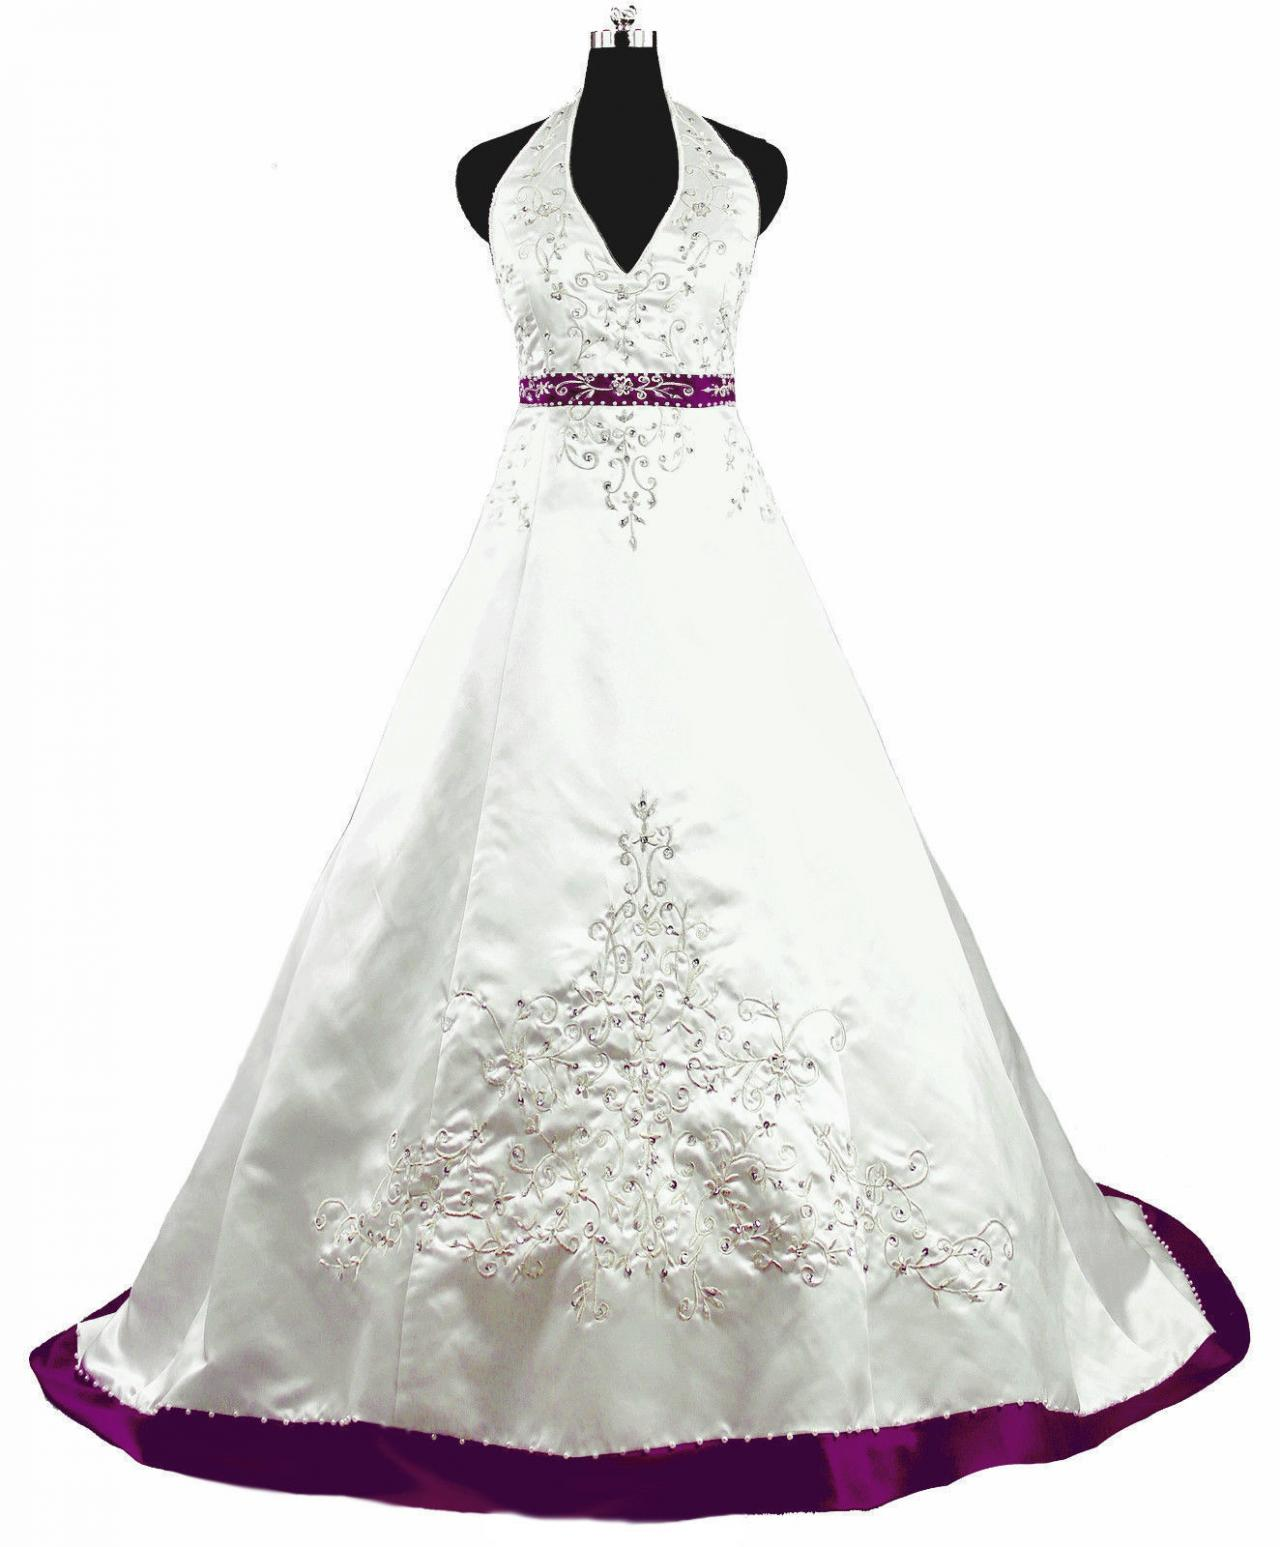 2017 Halter Embroidered Purple Wedding Dresses Long New Satin Beading Chapel Train Bridal Gown